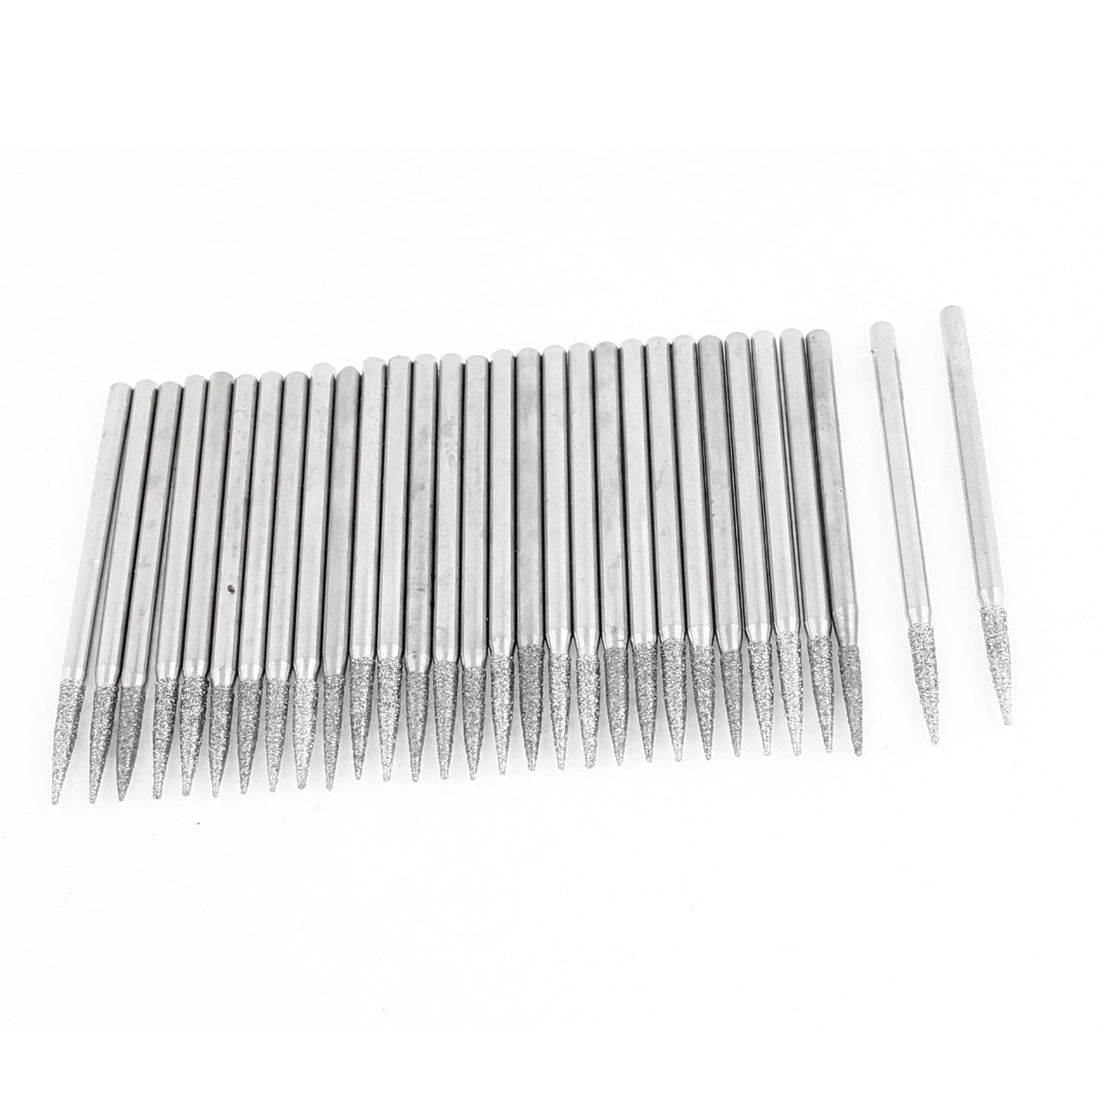 30 Pcs 2.3mm Shank Diamond Coated Taper Point Tip Grinding Bits